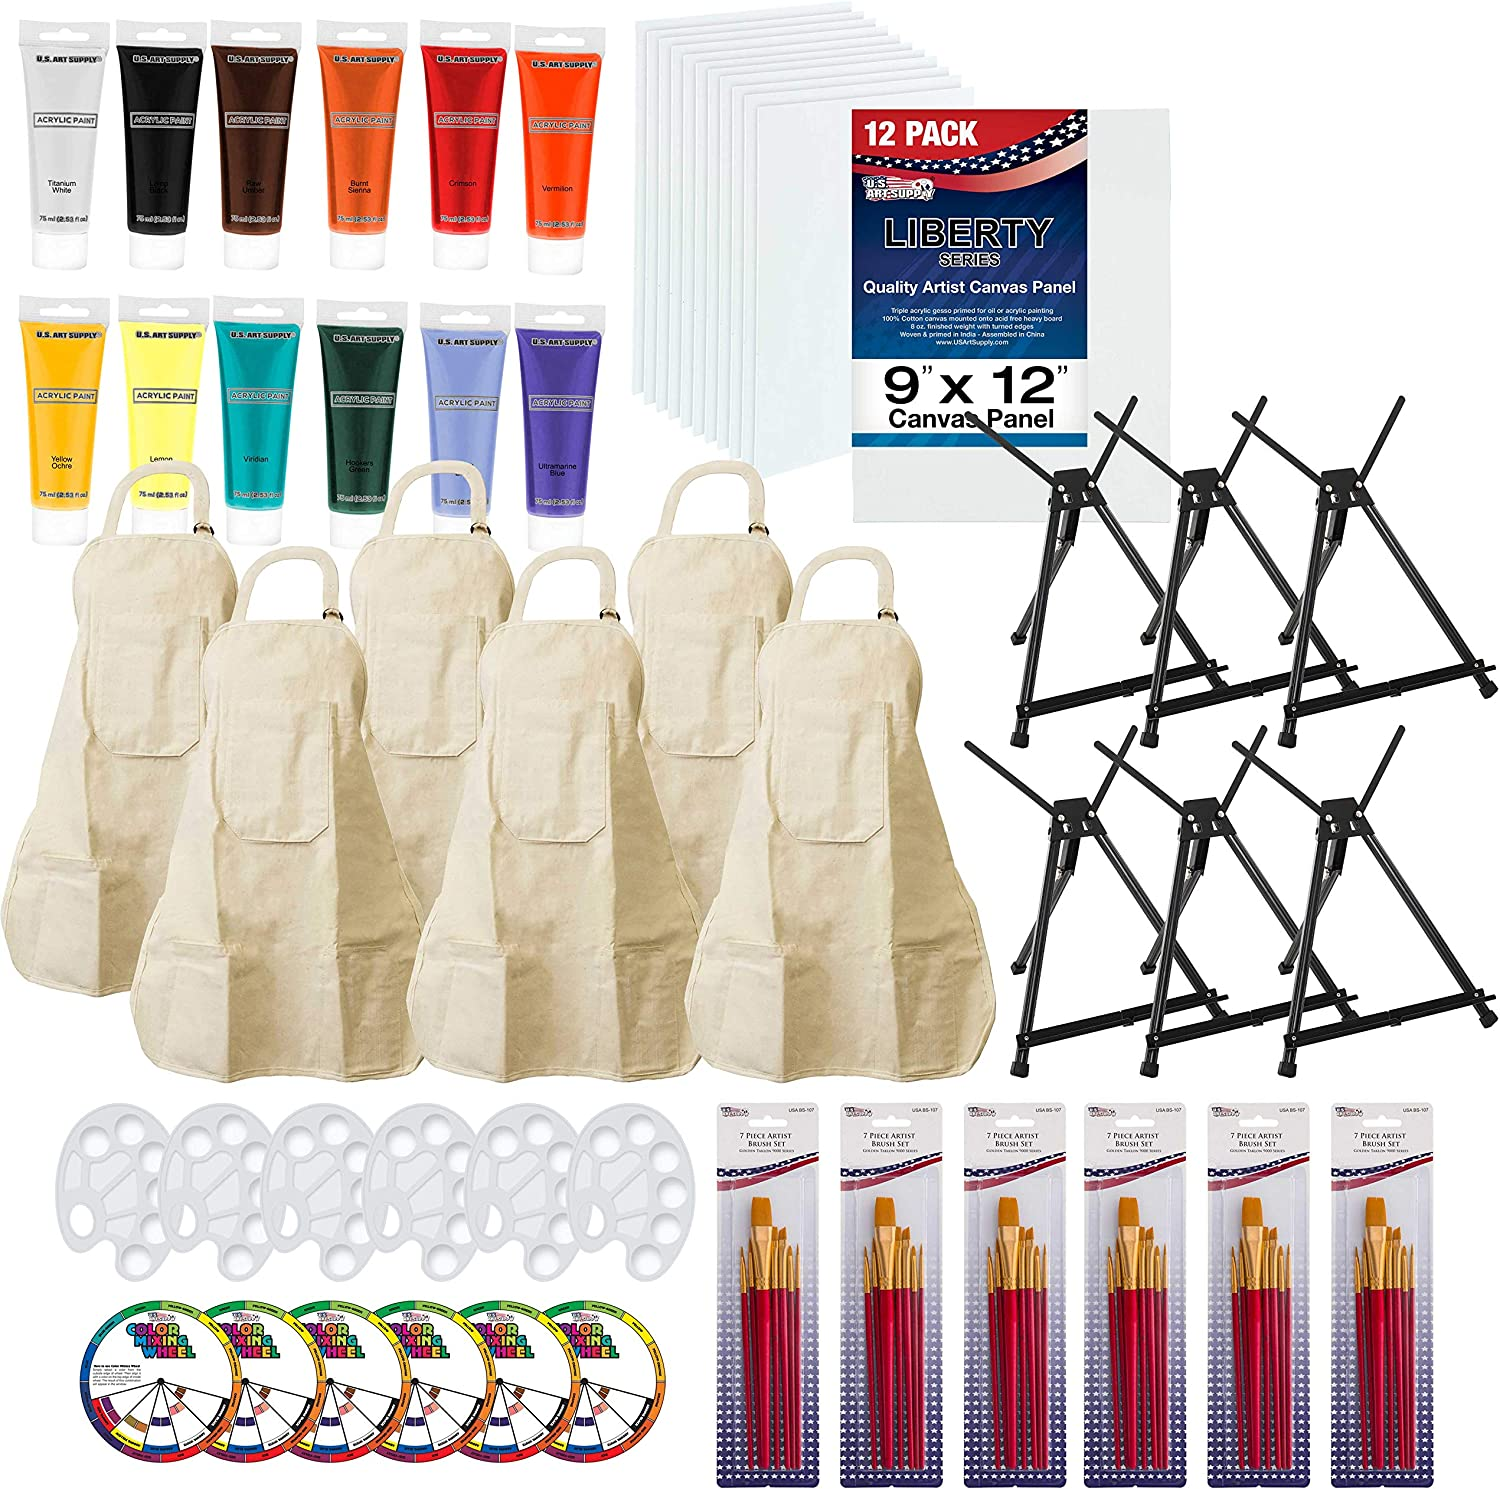 U.S. Art Supply Paint and Sip Art Party Painting Kit - 6 Easels, 12 Paint Tube Set, 12 Canvas Panels, 6 Brush Sets & 6 Aprons